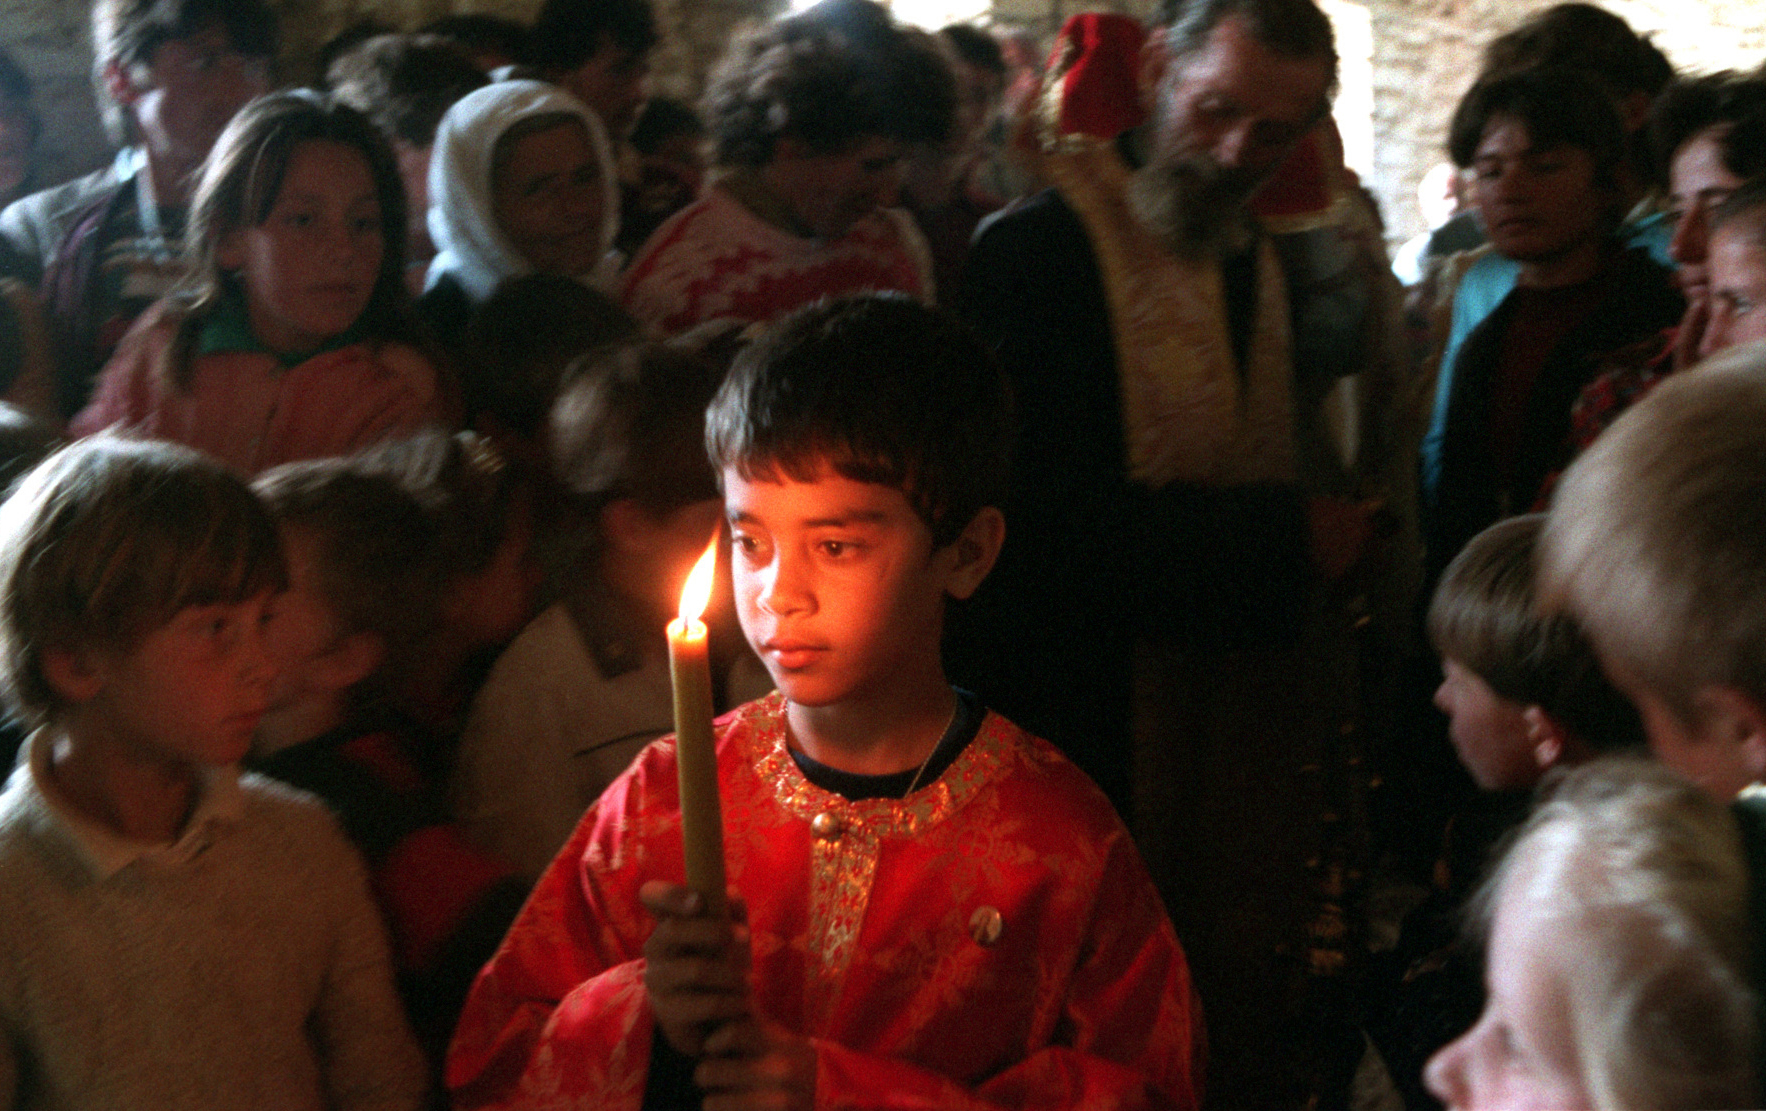 Stephanos Ritsi, 9, son of Father Martin Ritsi, helps with the liturgy at St. Martin's Church in the village of Jeronisht. Ritsi has been helping to resurrect religion in long-isolated Albania. ©Gail Fisher Los Angeles Times